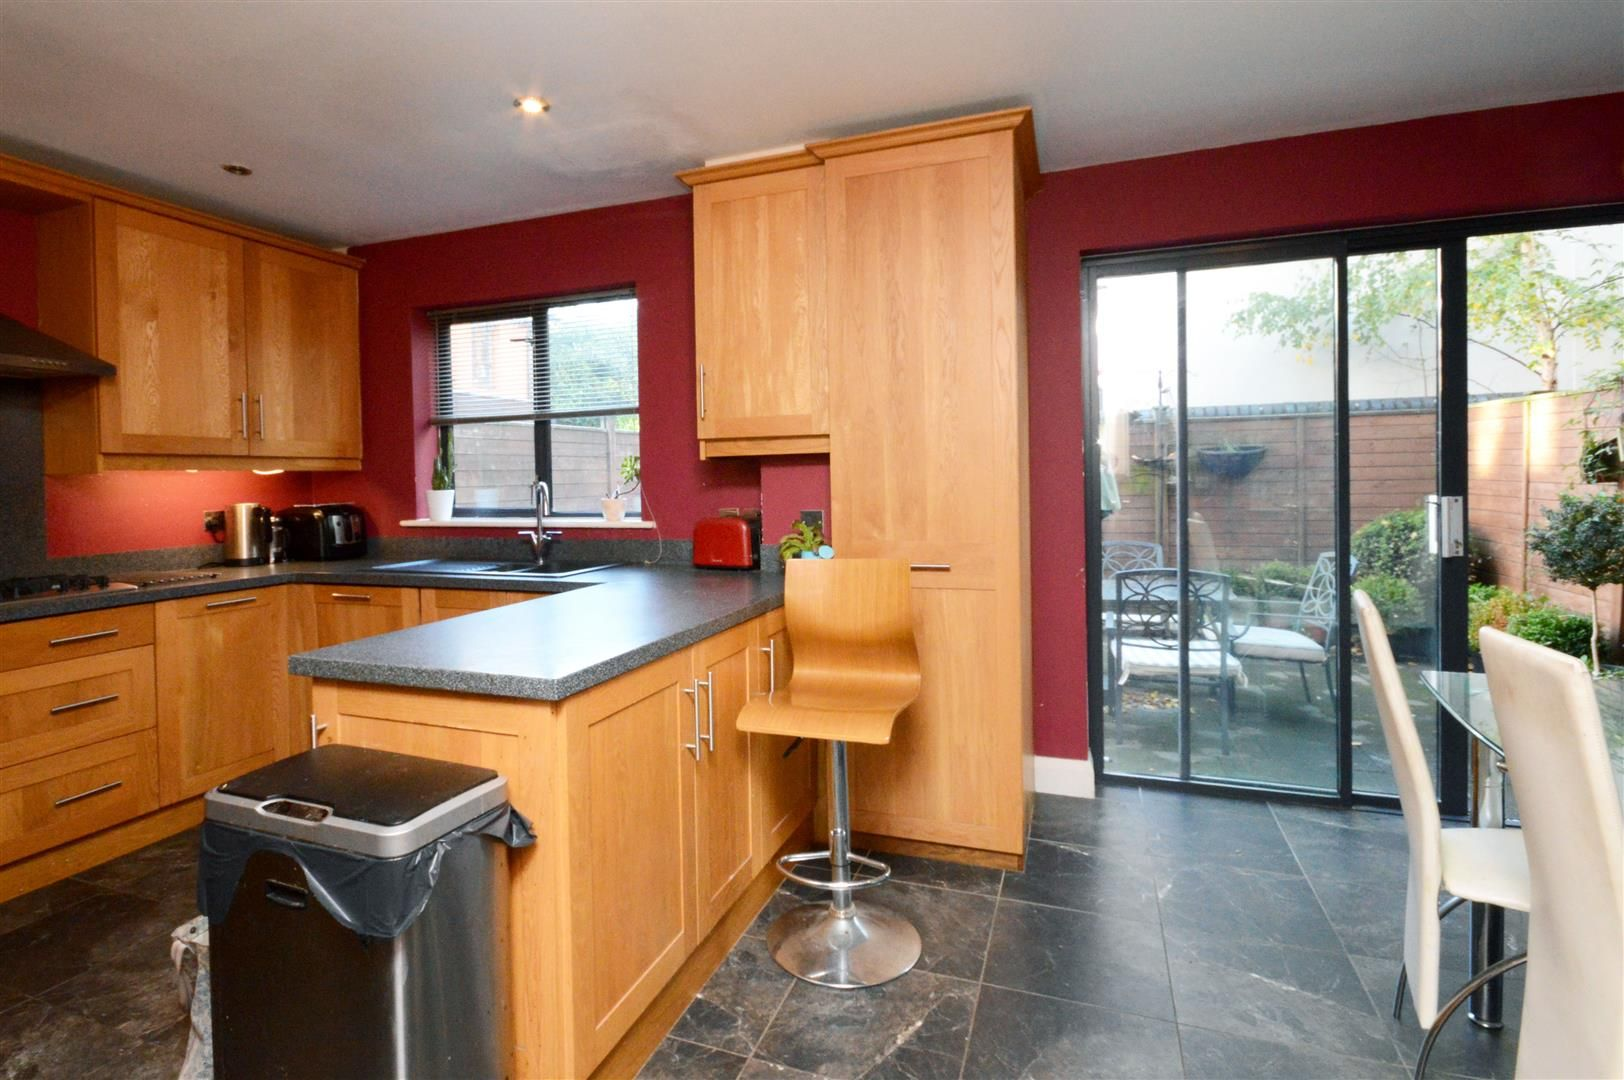 5 bed end of terrace for sale 5